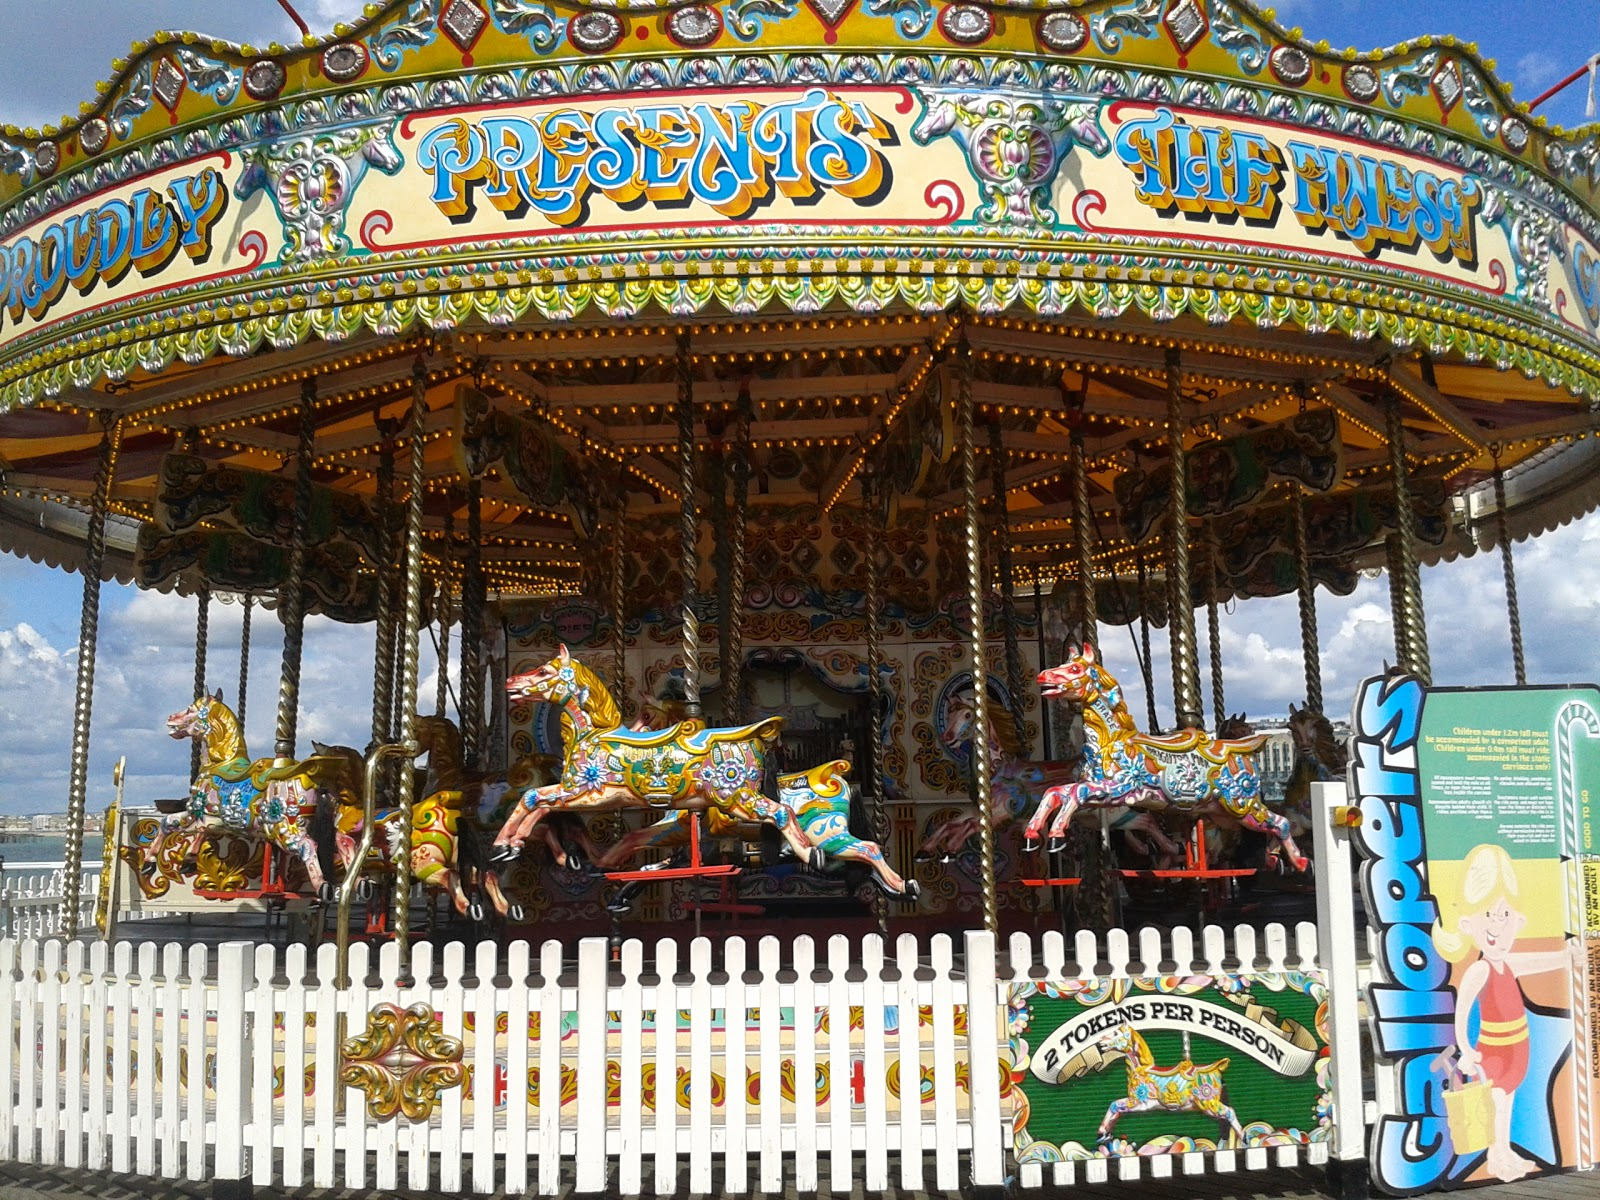 A carousel on Brighton Pier